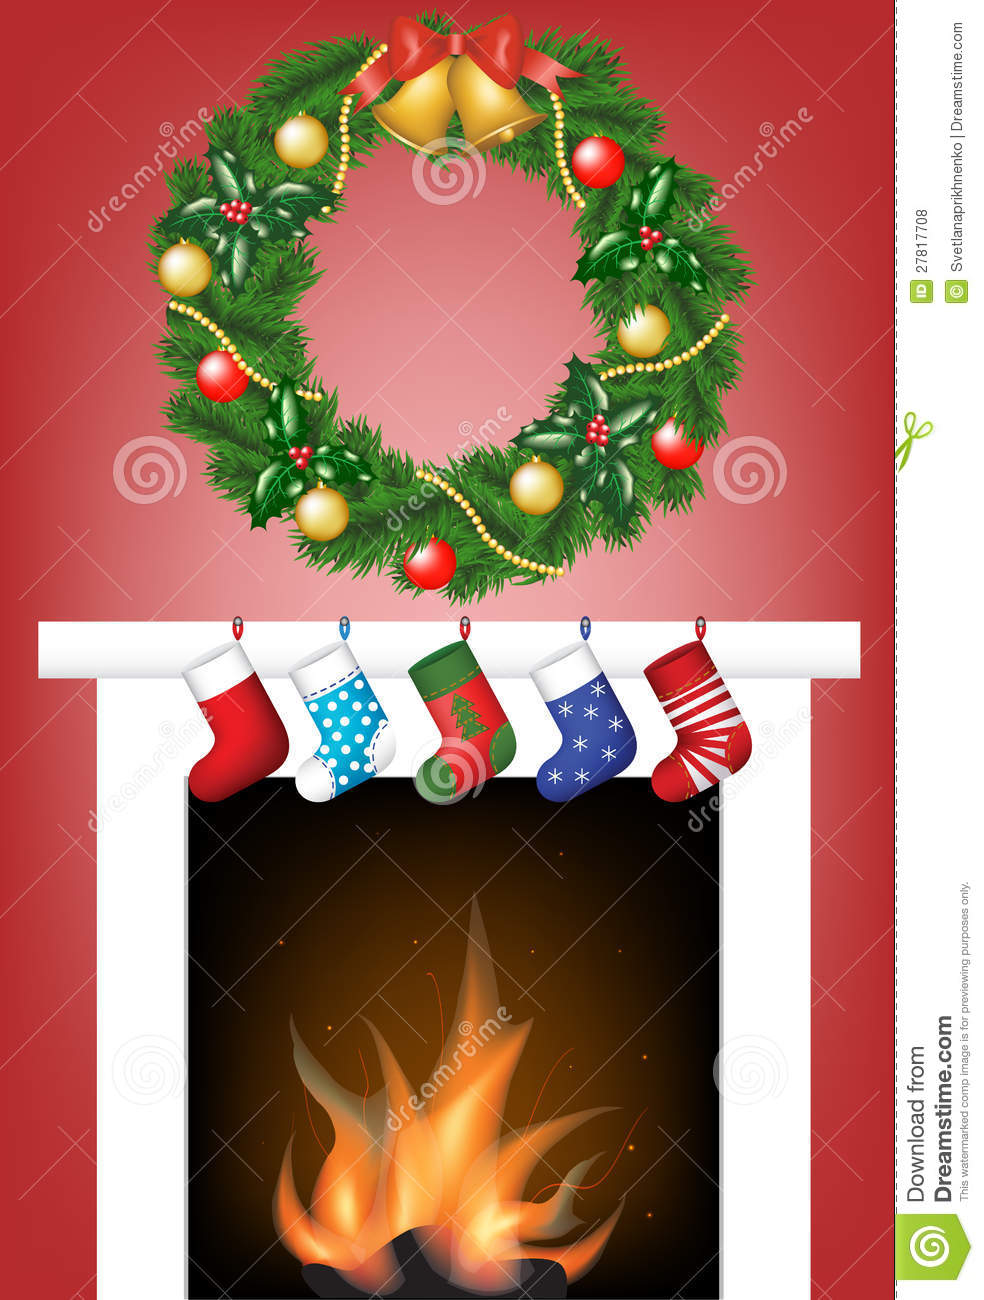 Fireplace socks and garland royalty free stock photos